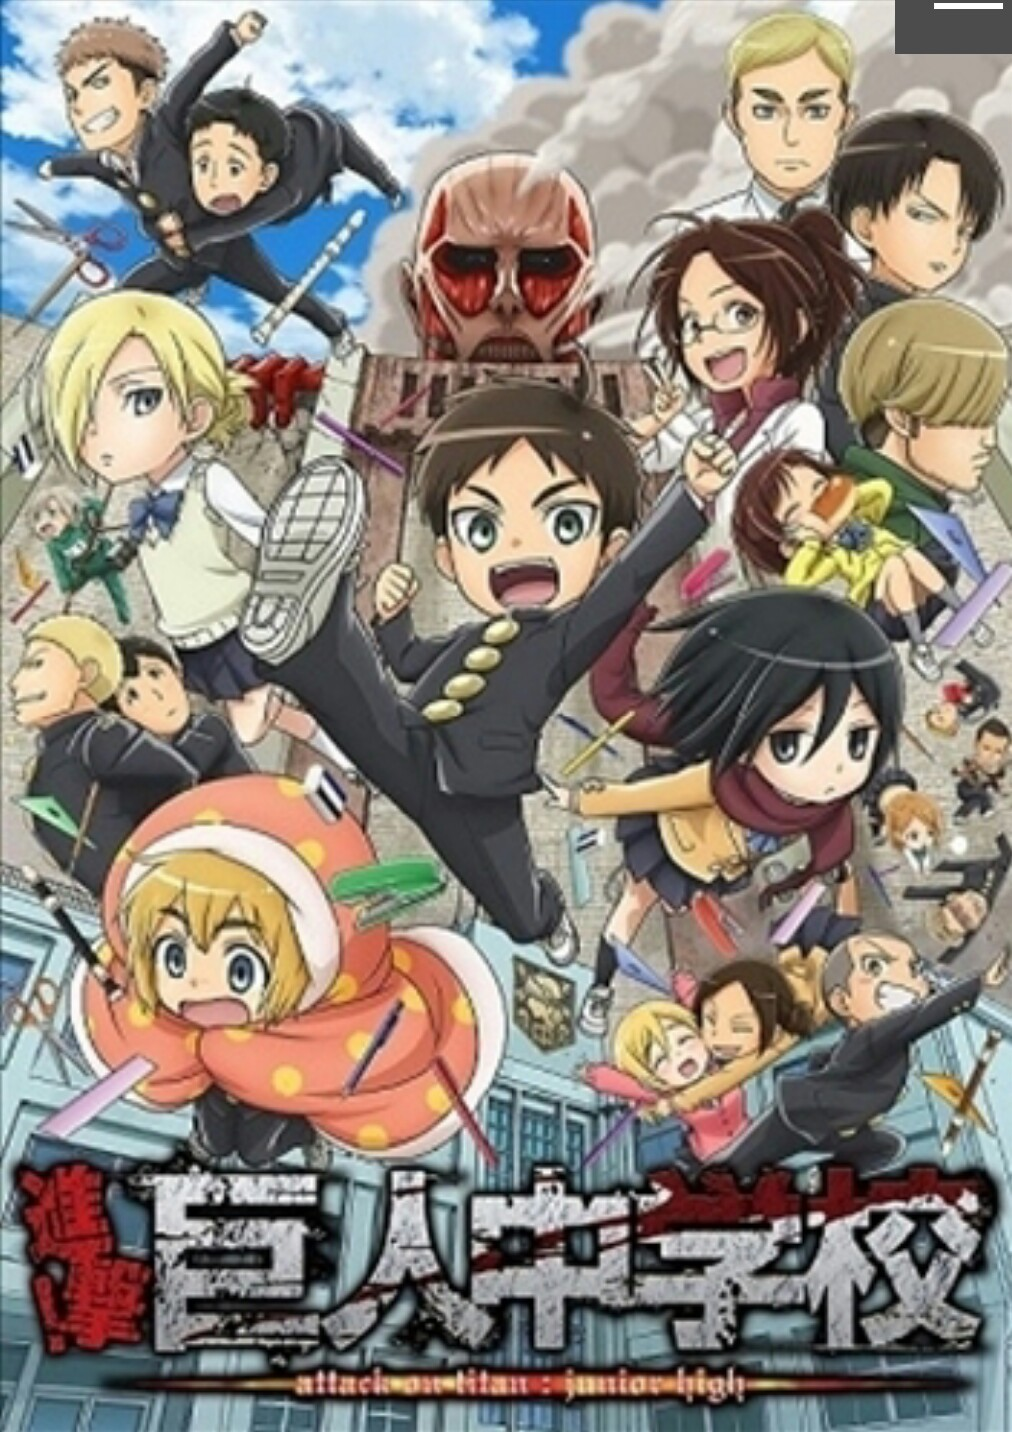 http://static.tvtropes.org/pmwiki/pub/images/attack_on_titan_junior_high.jpg